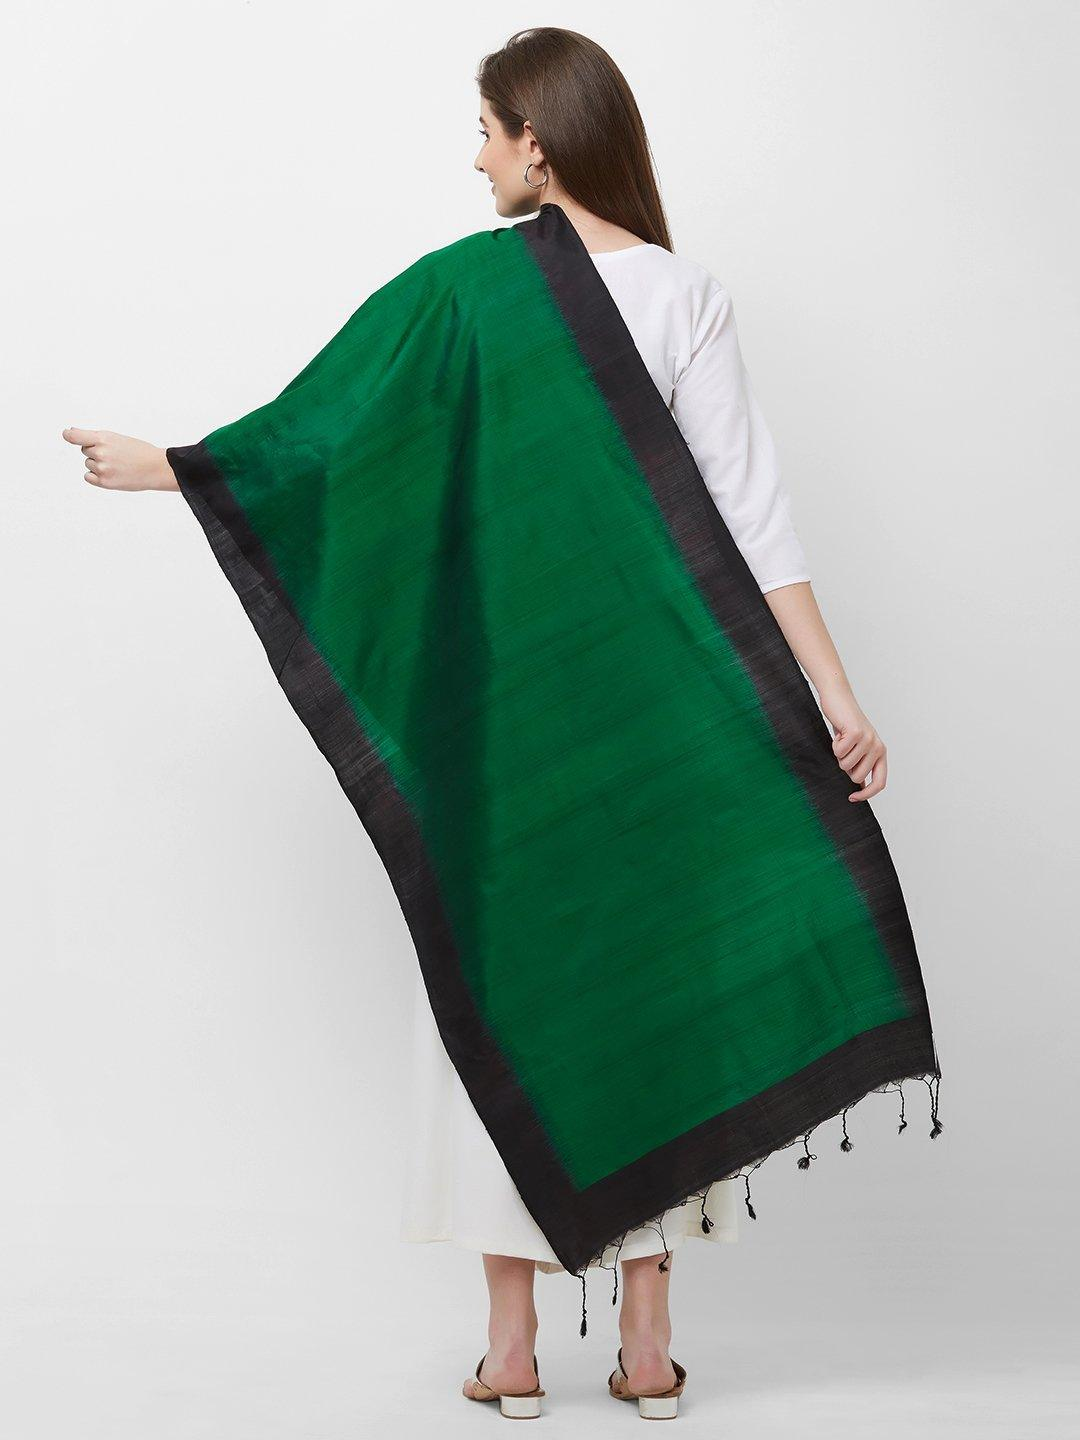 CraftsCollection.in -Green and Black Pure Silk Stole